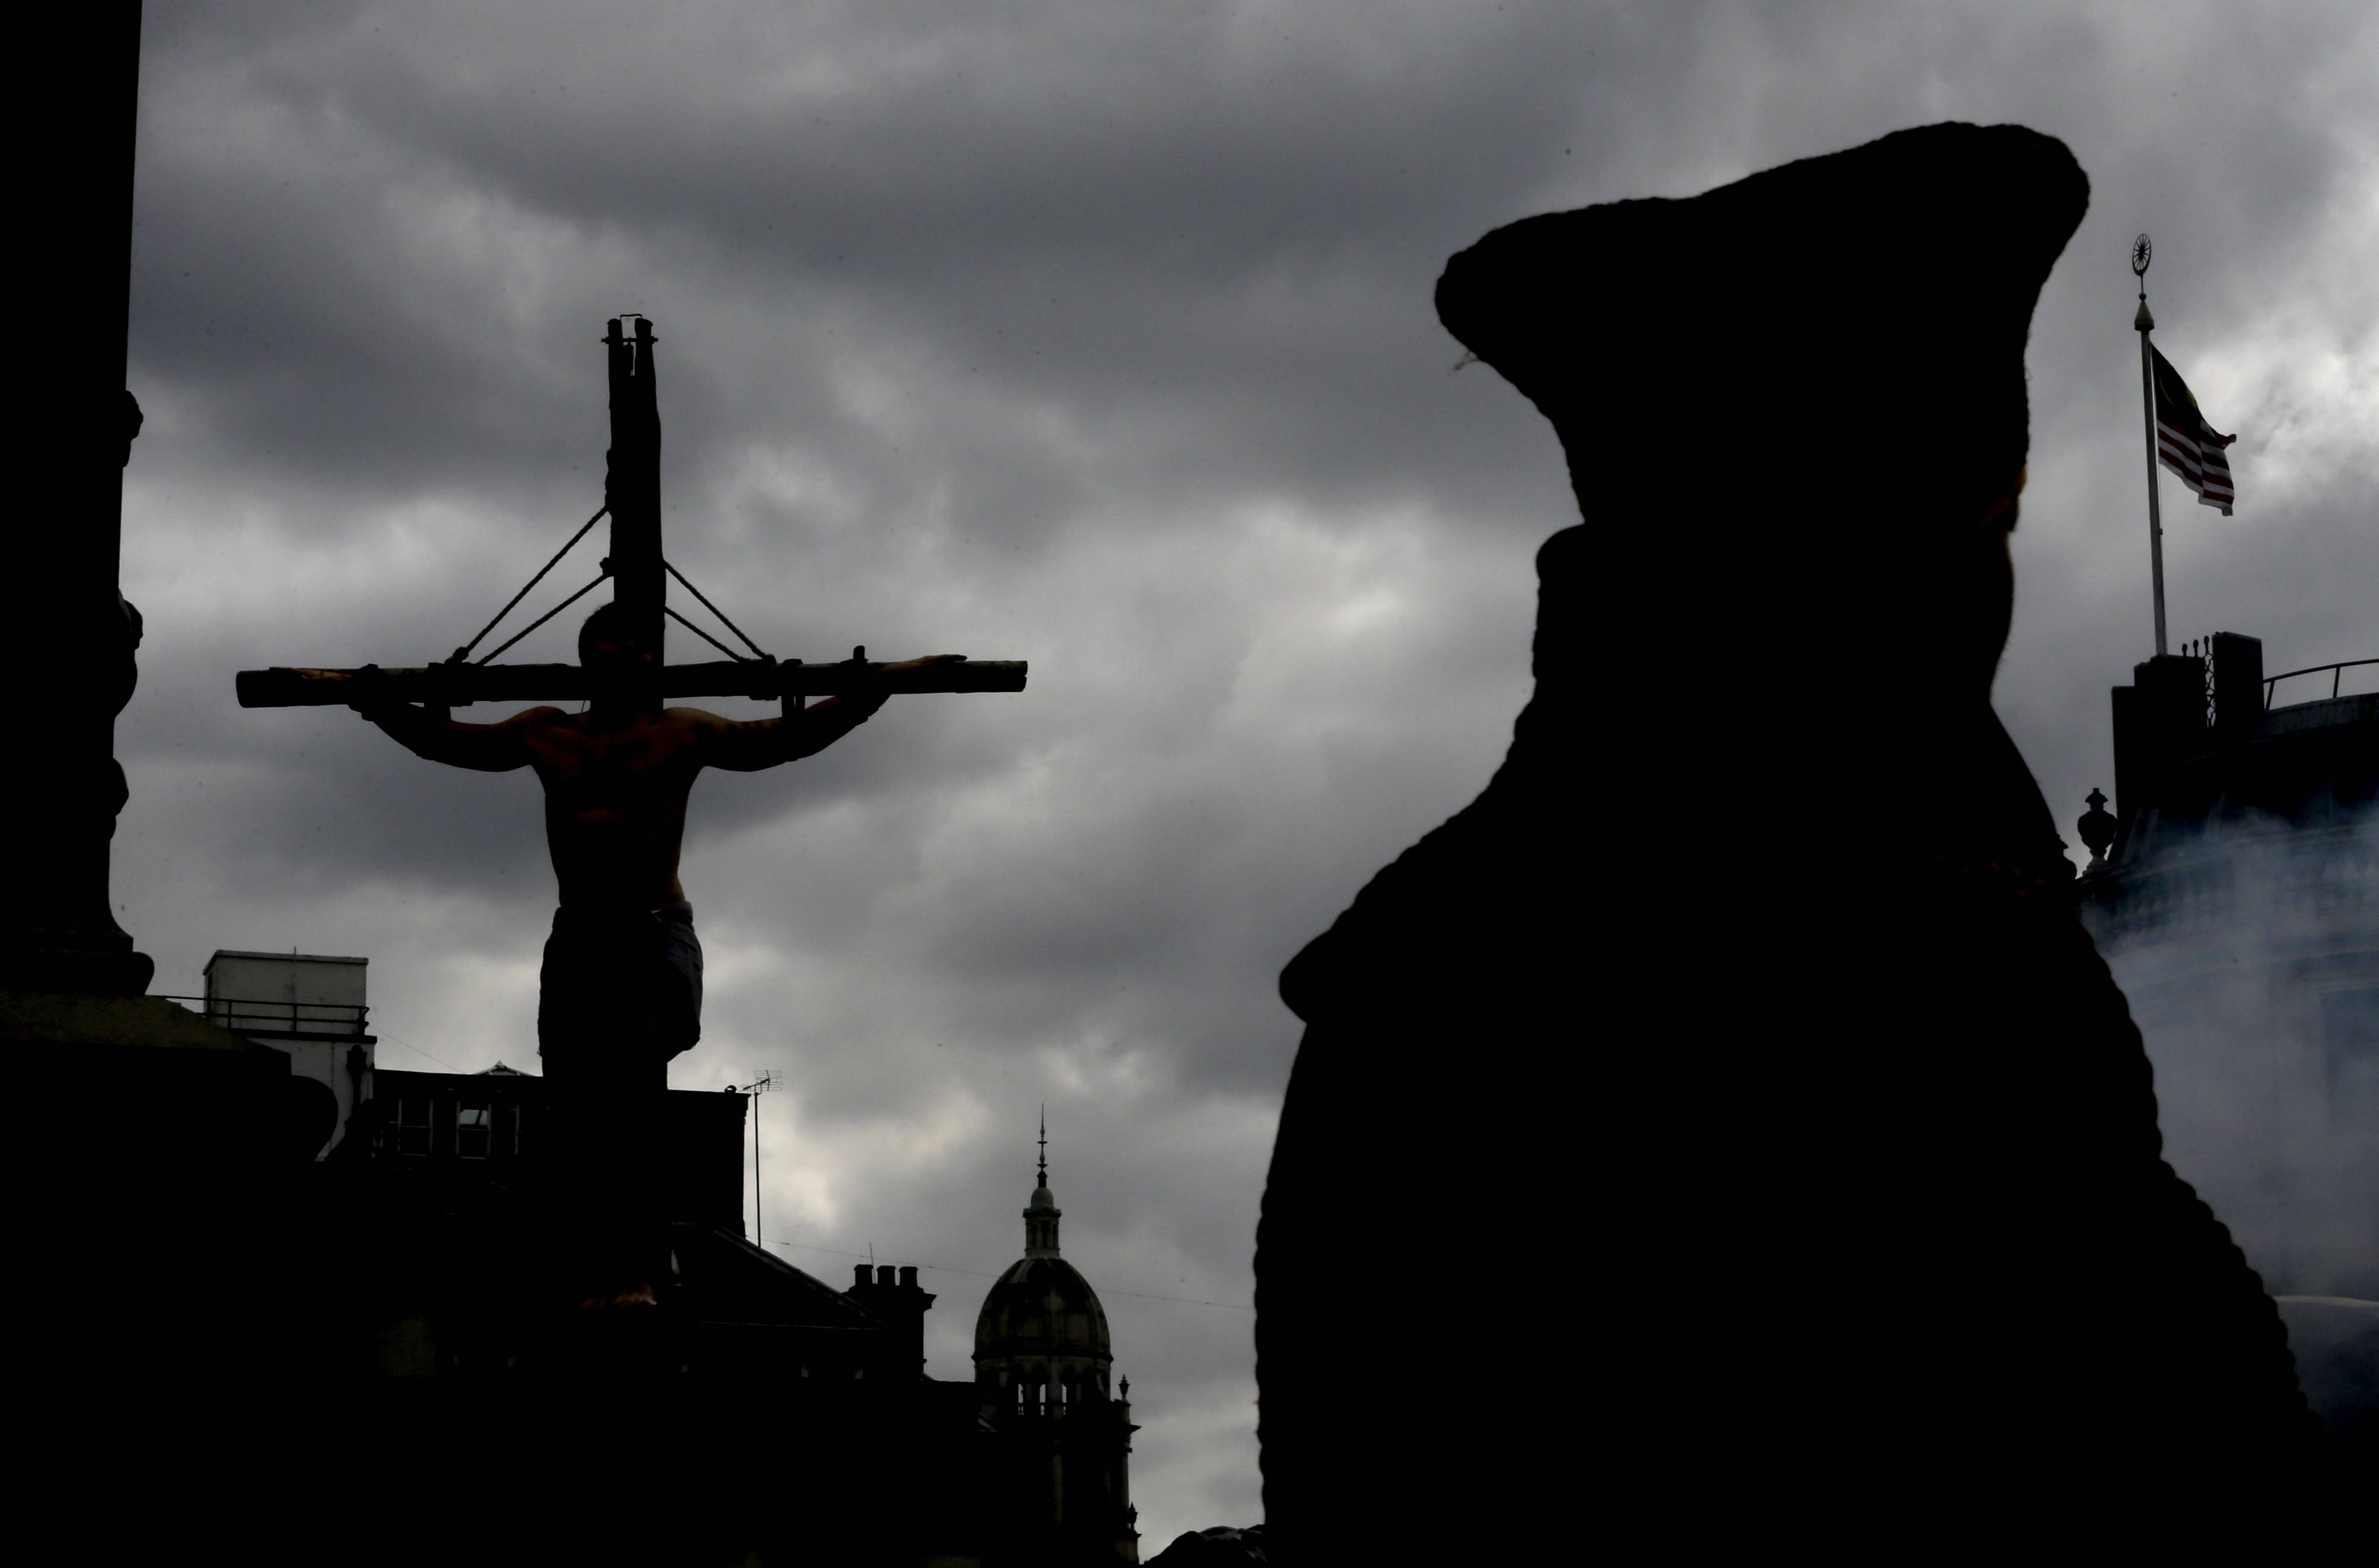 An actor is silhouetted hanging on a cross during a performance Friday in Trafalgar Square in London. The play called 'The Passion of Jesus' was a free performance depicting the betrayal, capture, trial, crucifixion and resurrection of Jesus, performed by the Wintershall players.